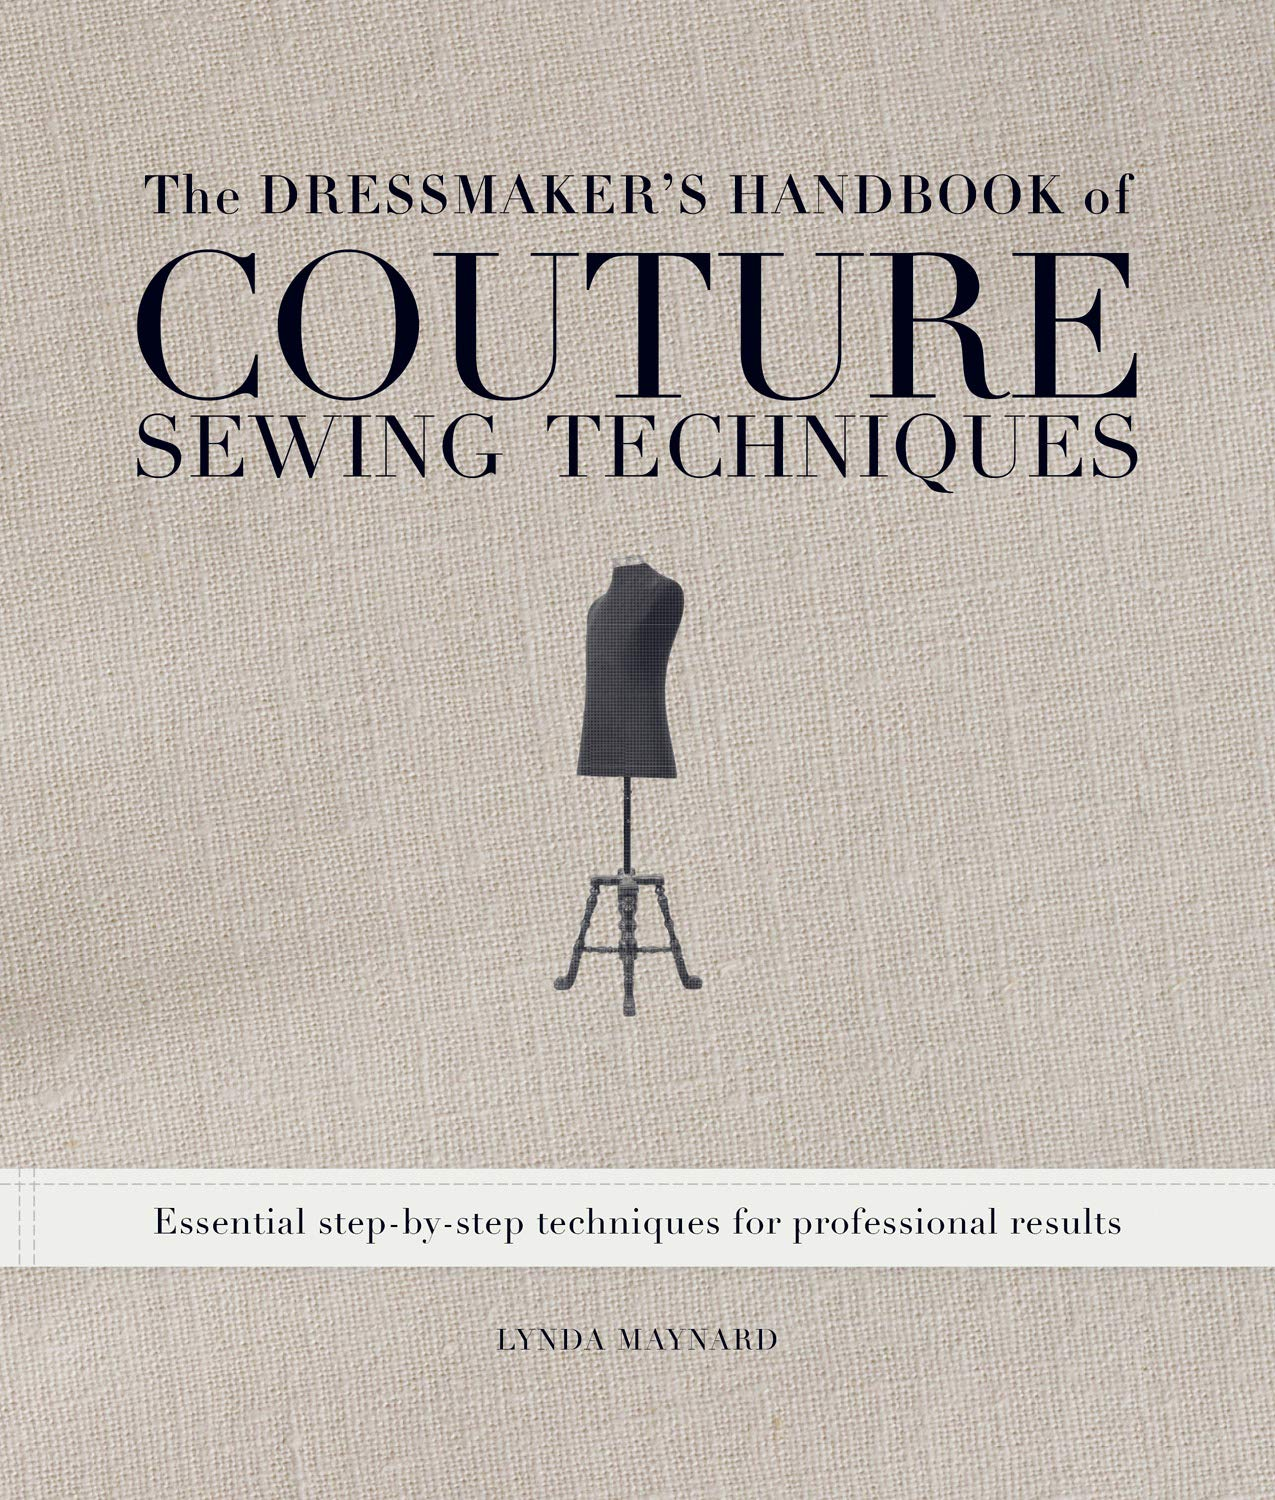 The Dressmaker's Handbook of Couture Sewing Techniques: Essential Step-by-Step Techniques for Professional Results by Interweave